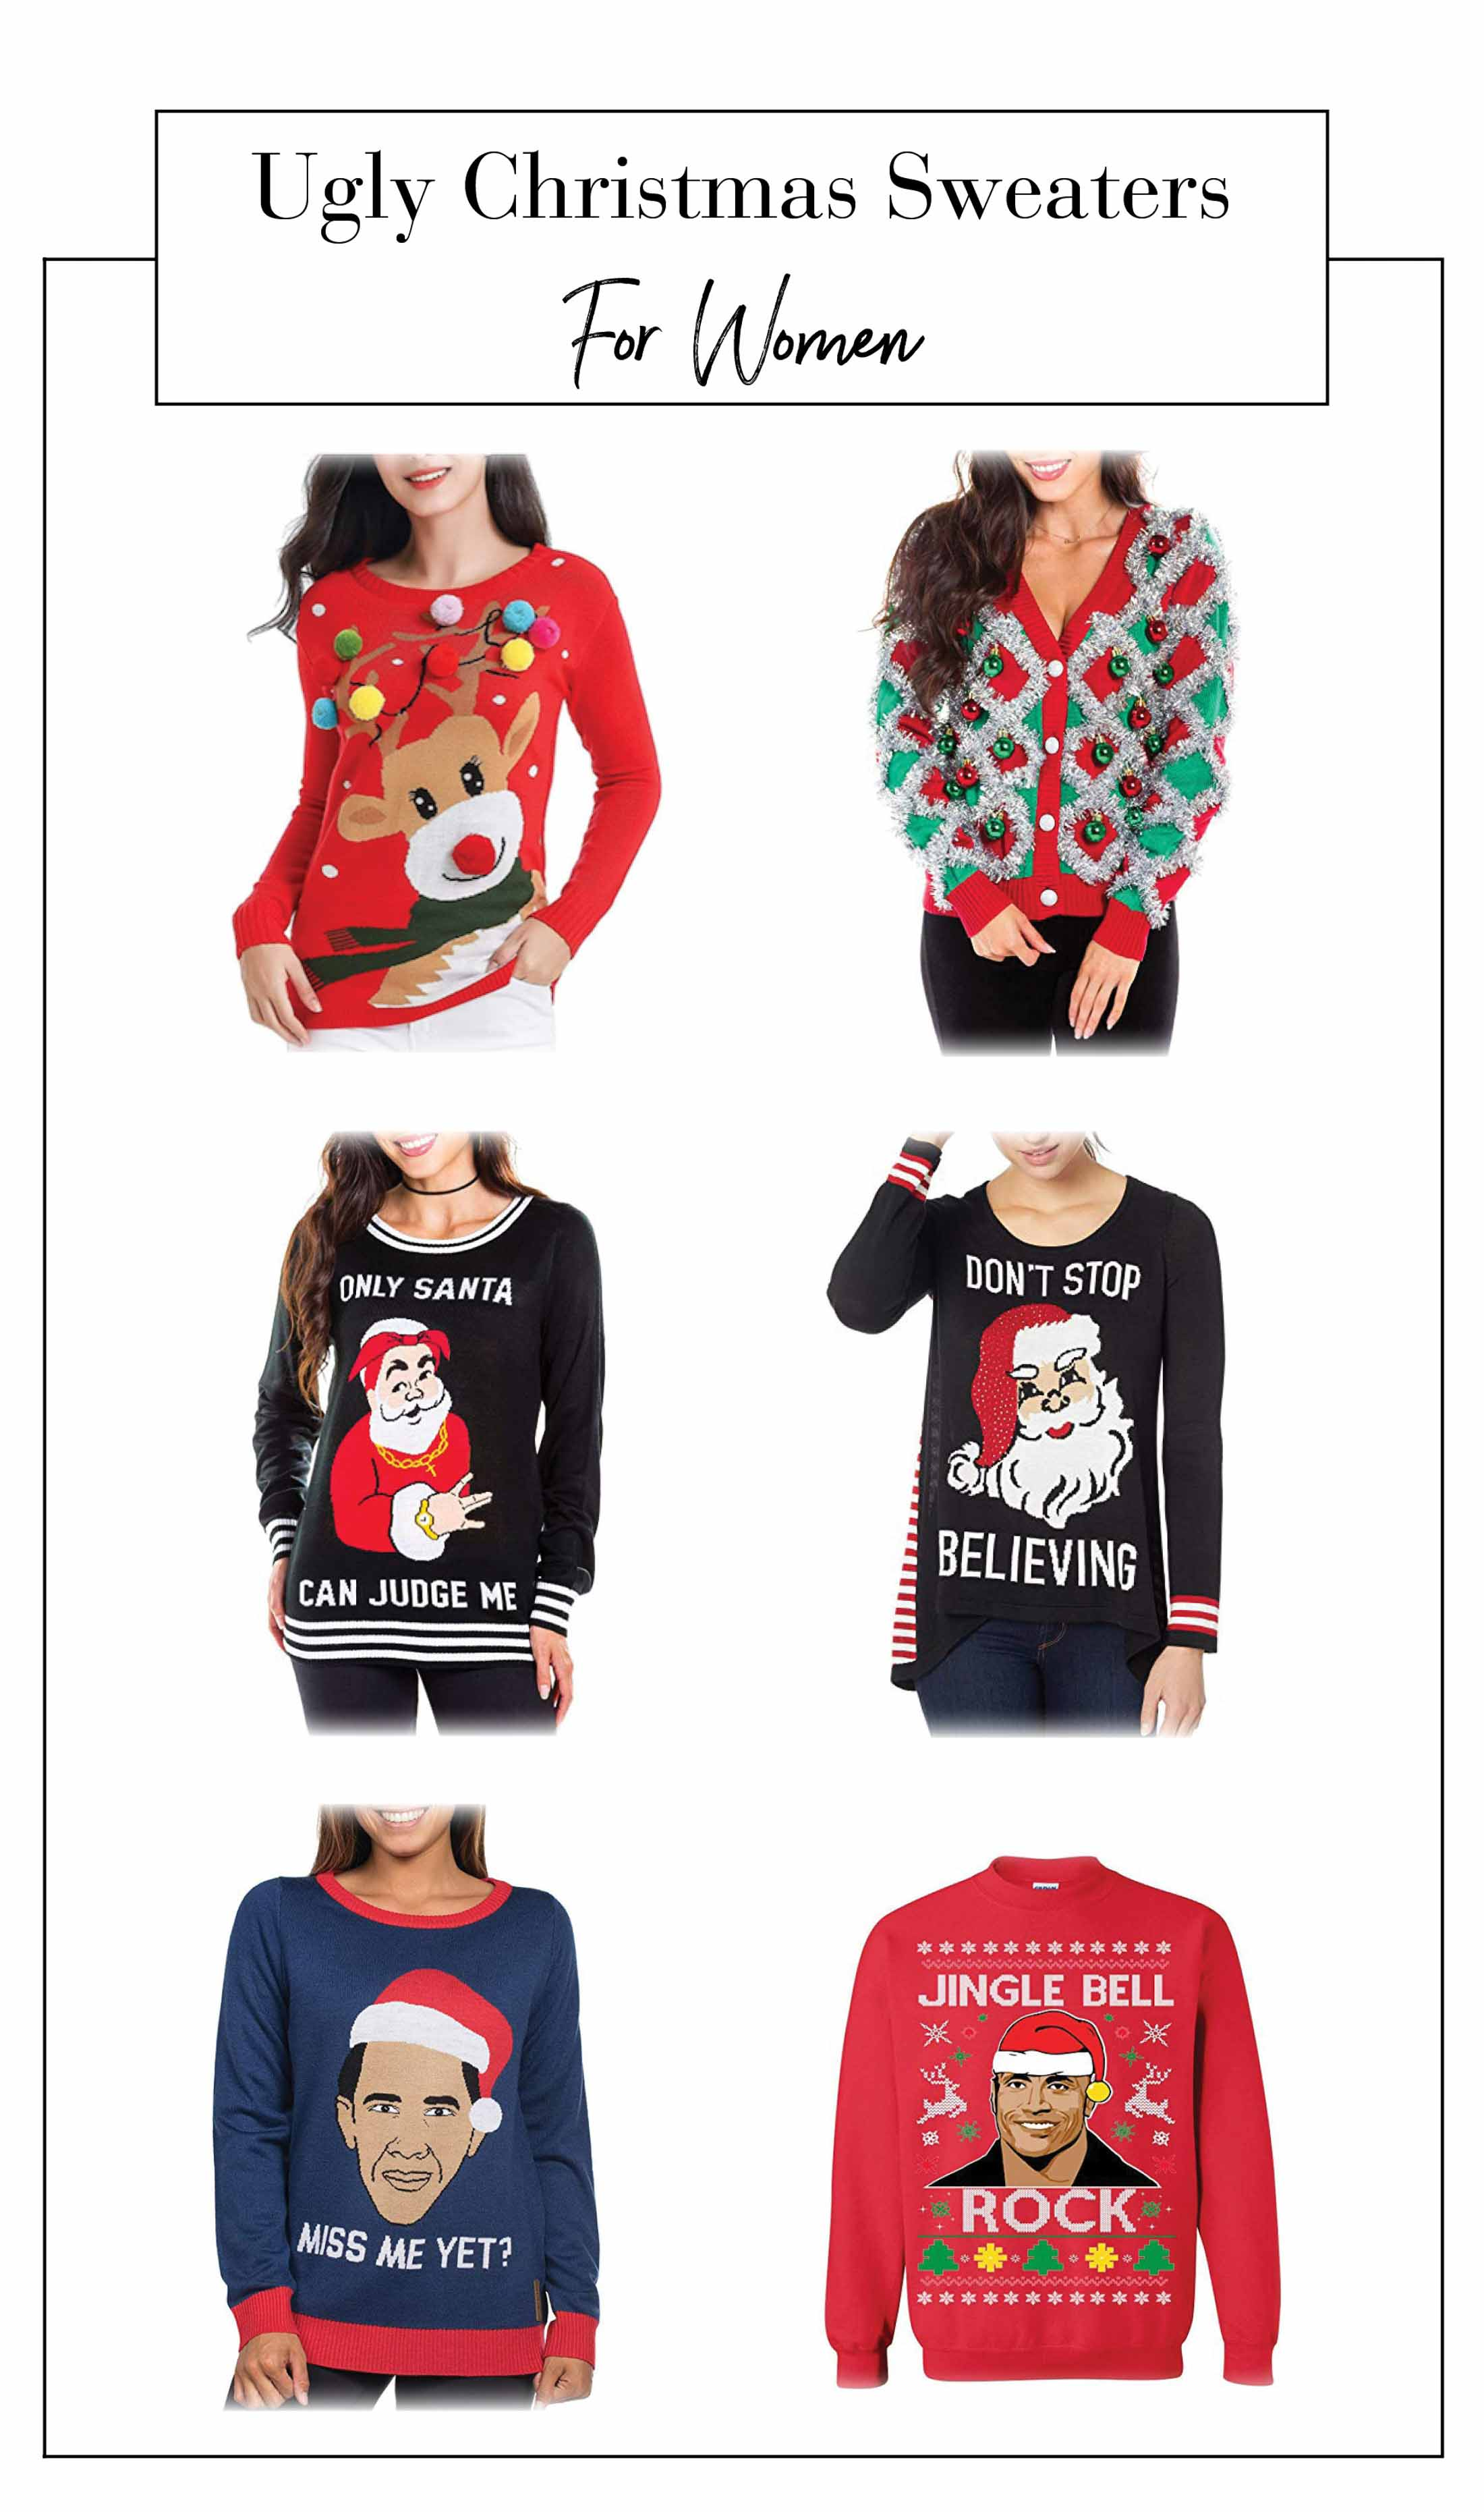 You know those kind-of awful, VERY ugly Christmas sweaters that return every holiday season? Well...these are best for women, men, kids and baby....says us.